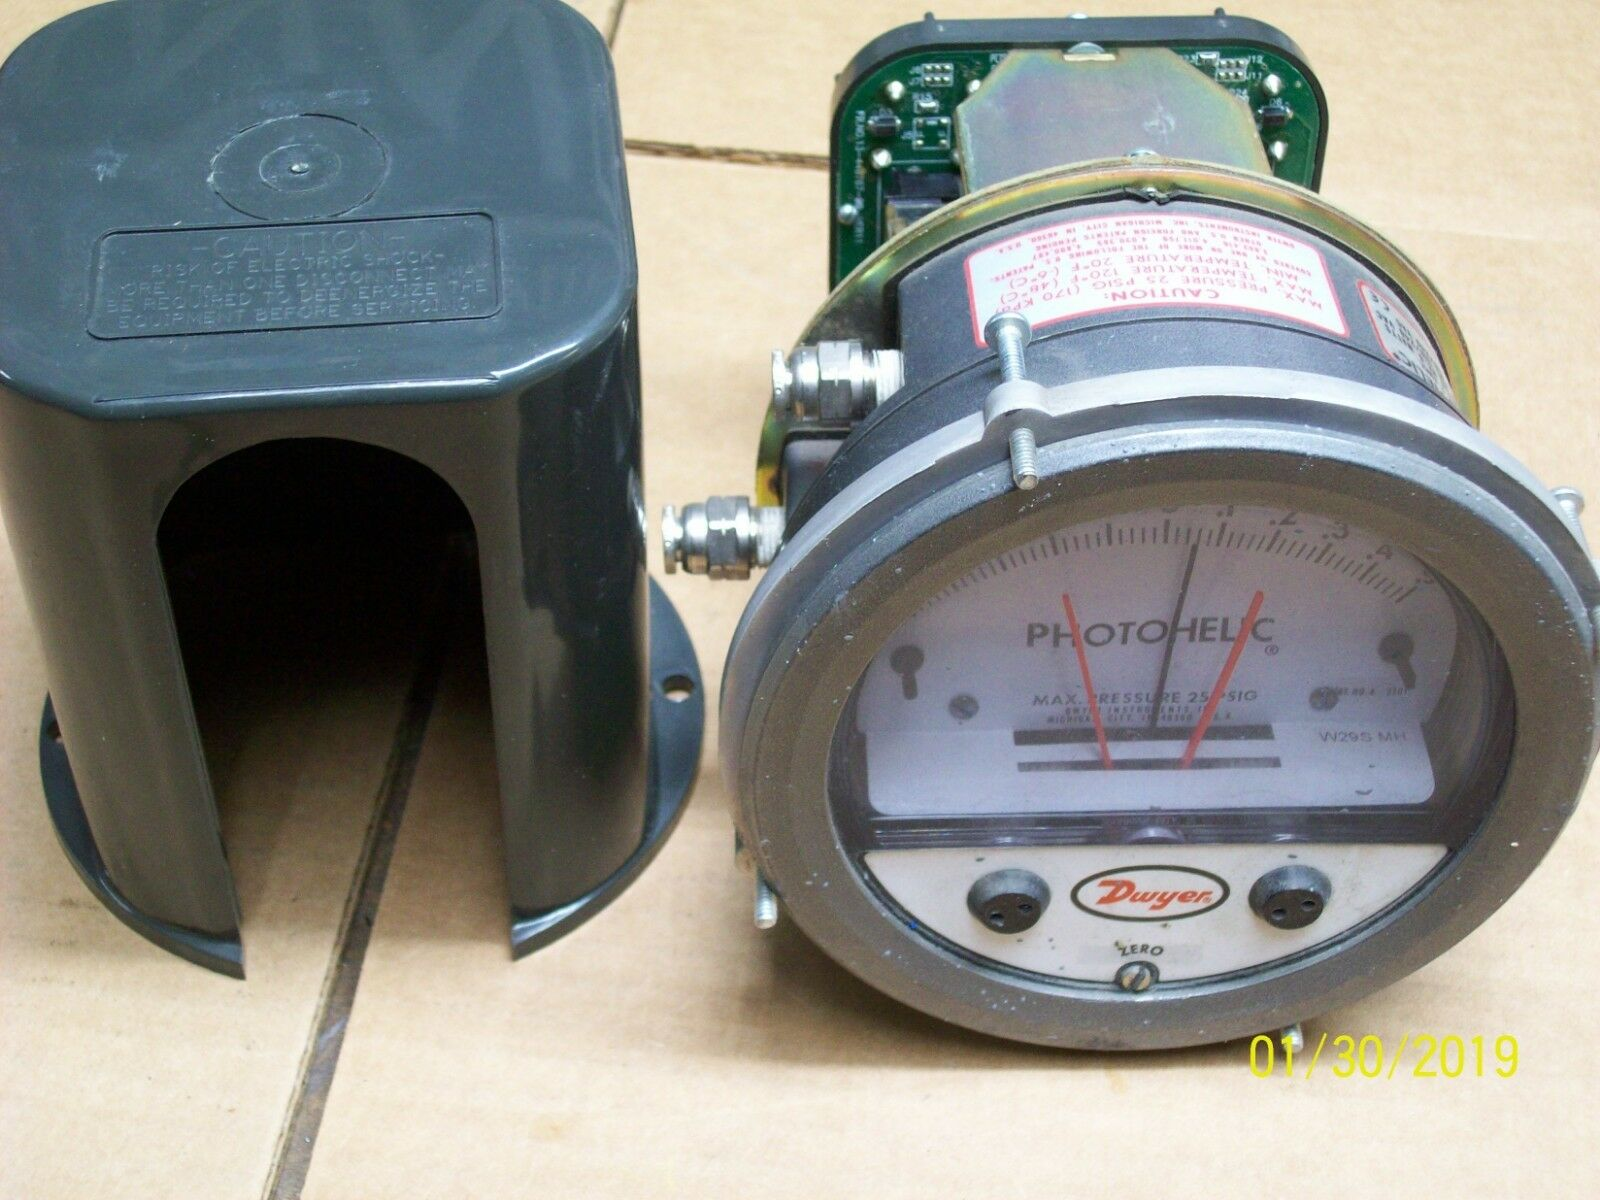 DWYER PRESSURE GAUGE PHOTOHELIC A3301 with DWYER AMPLIFIER RELAY 13-200861-01